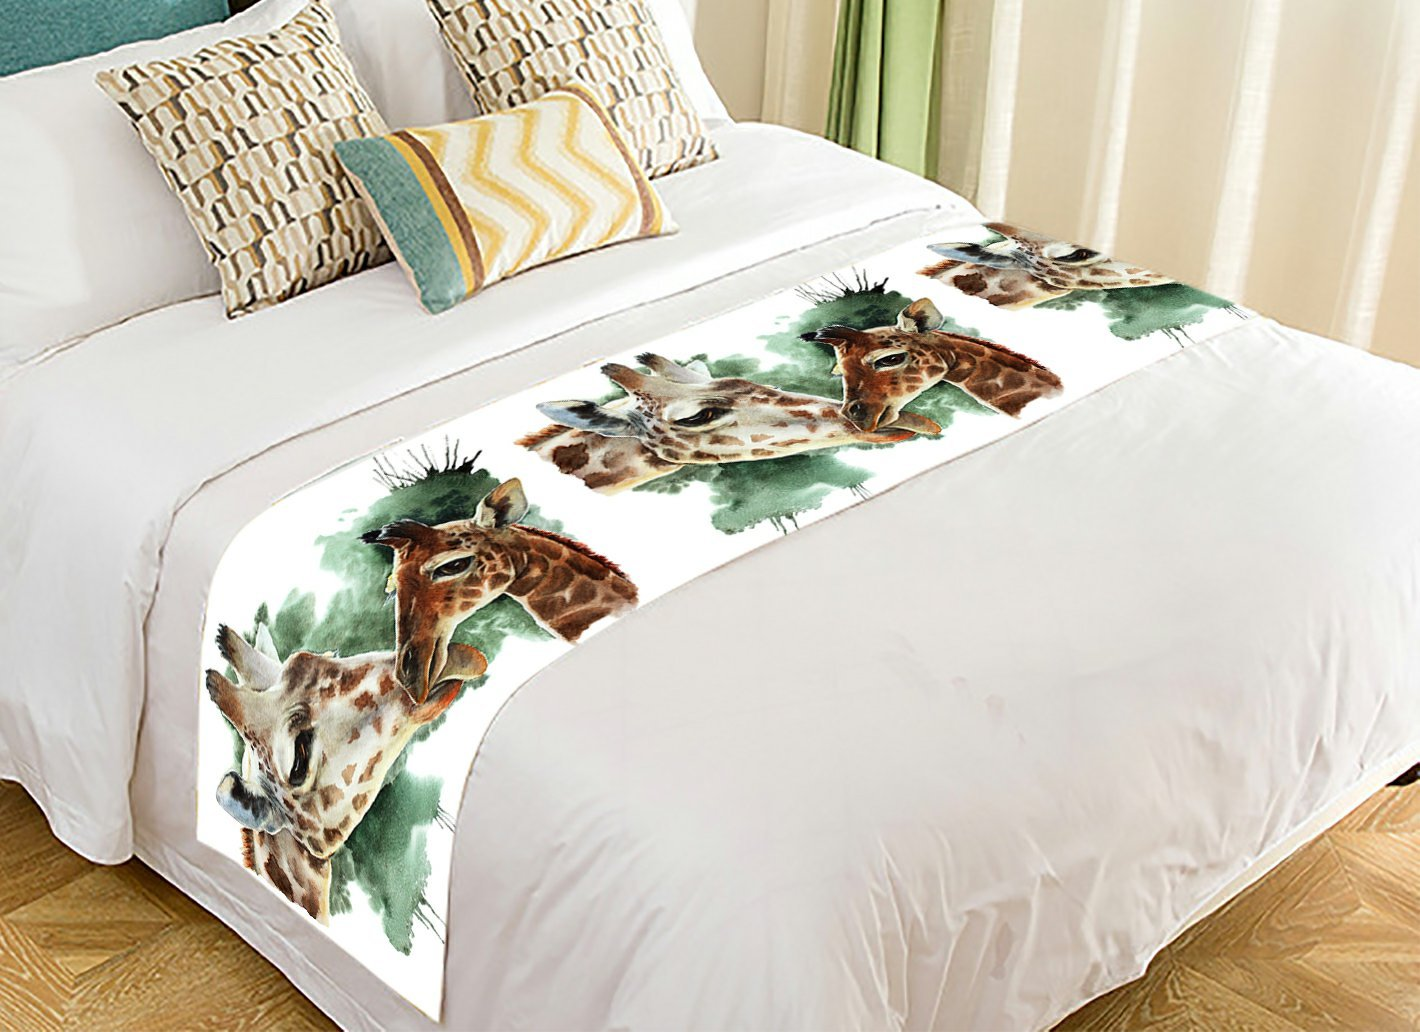 Custom Animal Bed Runner, Watercolor Couple of Giraffe Bed Runners And Scarves Bed Decoration 20x95 inch